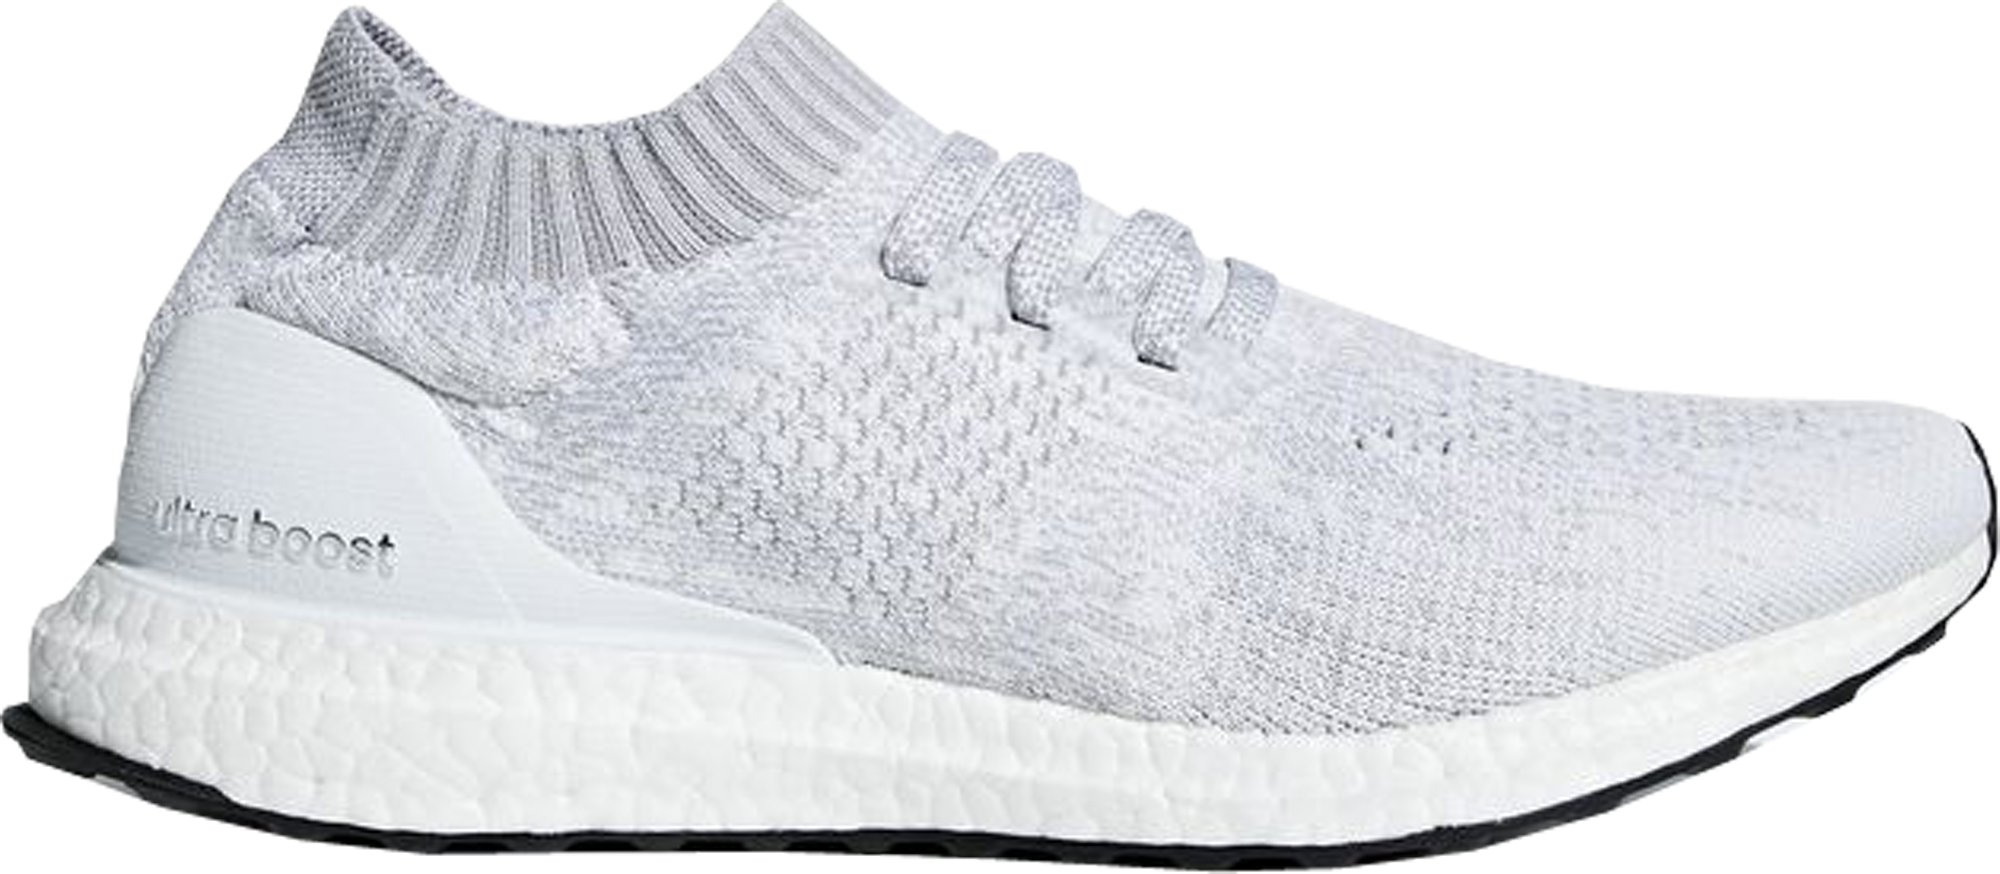 adidas Ultra Boost Uncaged White Tint